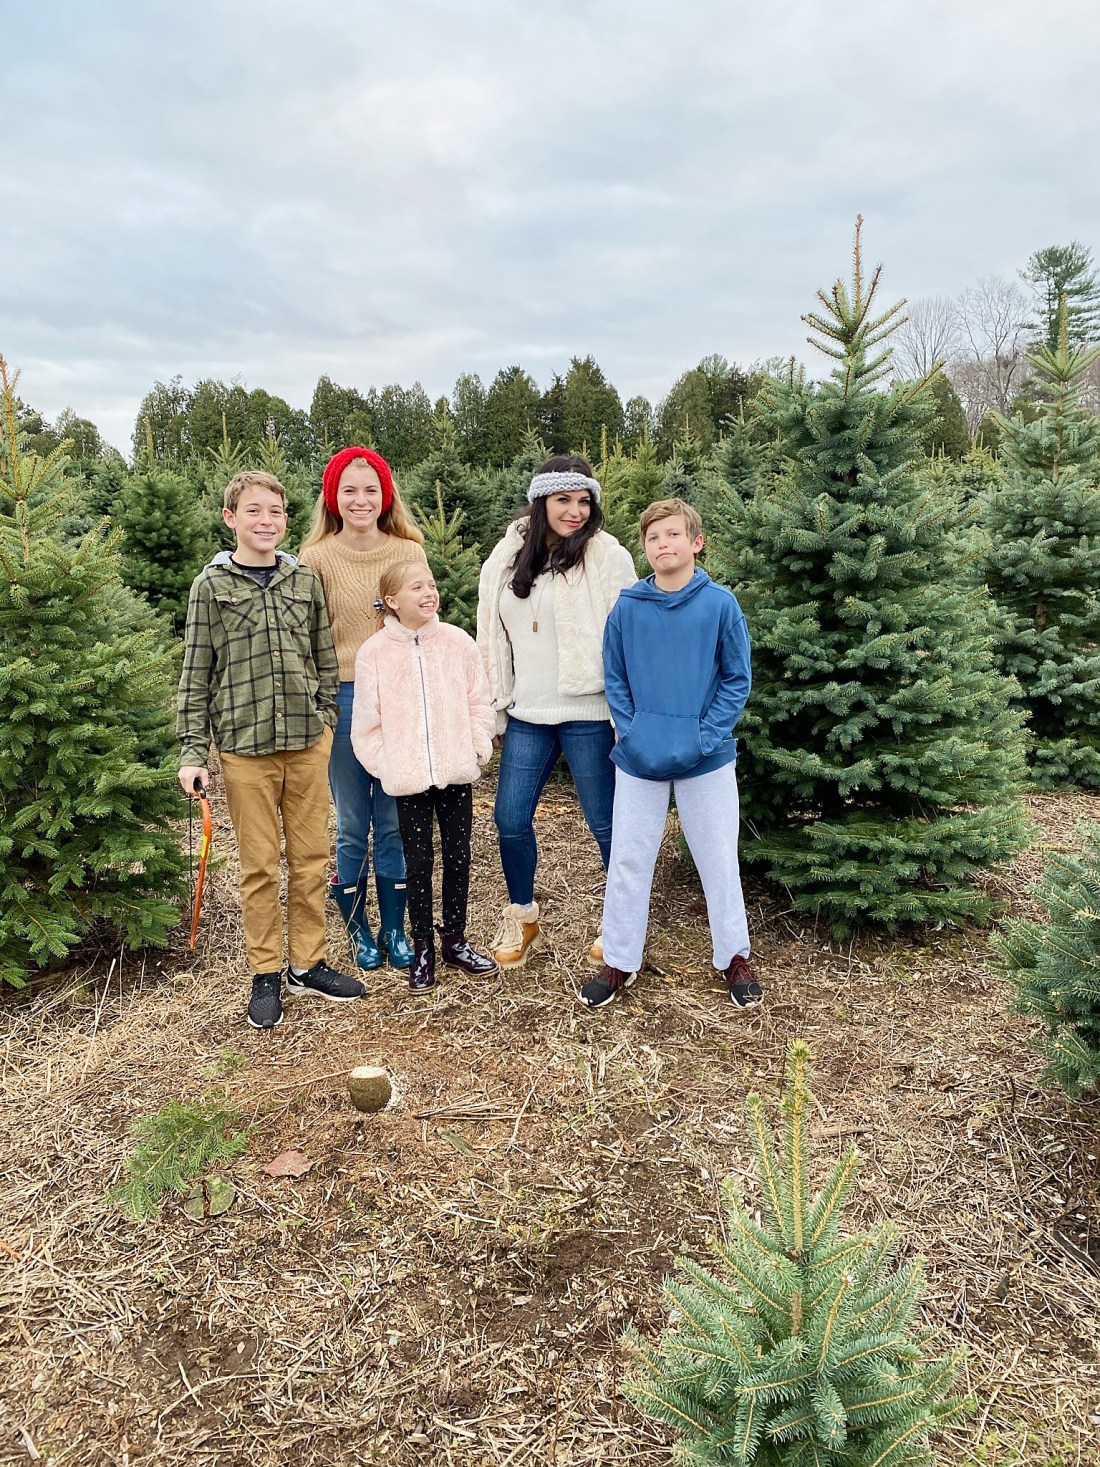 Our annual family tradition brings us to the Christmas Tree farm to find the perfect Christmas tree to cut down and bring home to decorate! Cutting down Christmas Tree.  Christmas tree cutting outfits || Darling Darleen Top Lifestyle Blogger